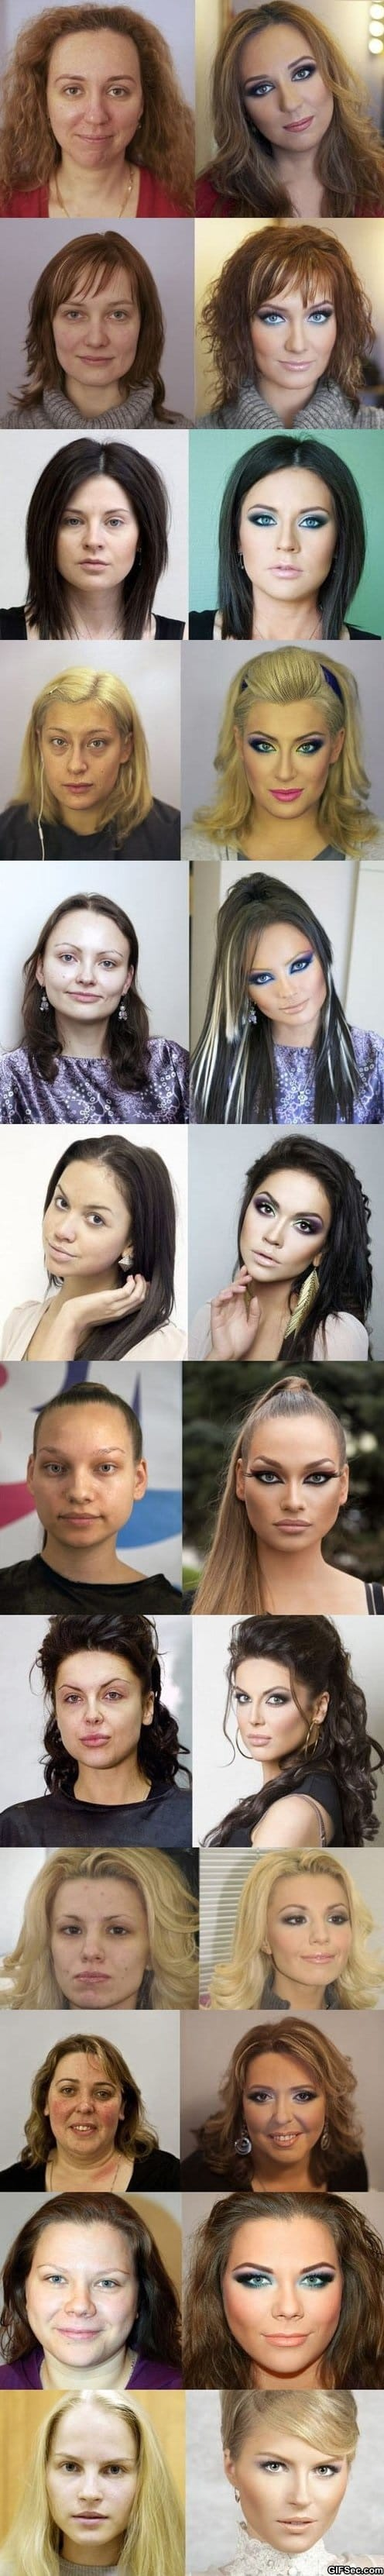 Funny - Russian Makeup - Before And After